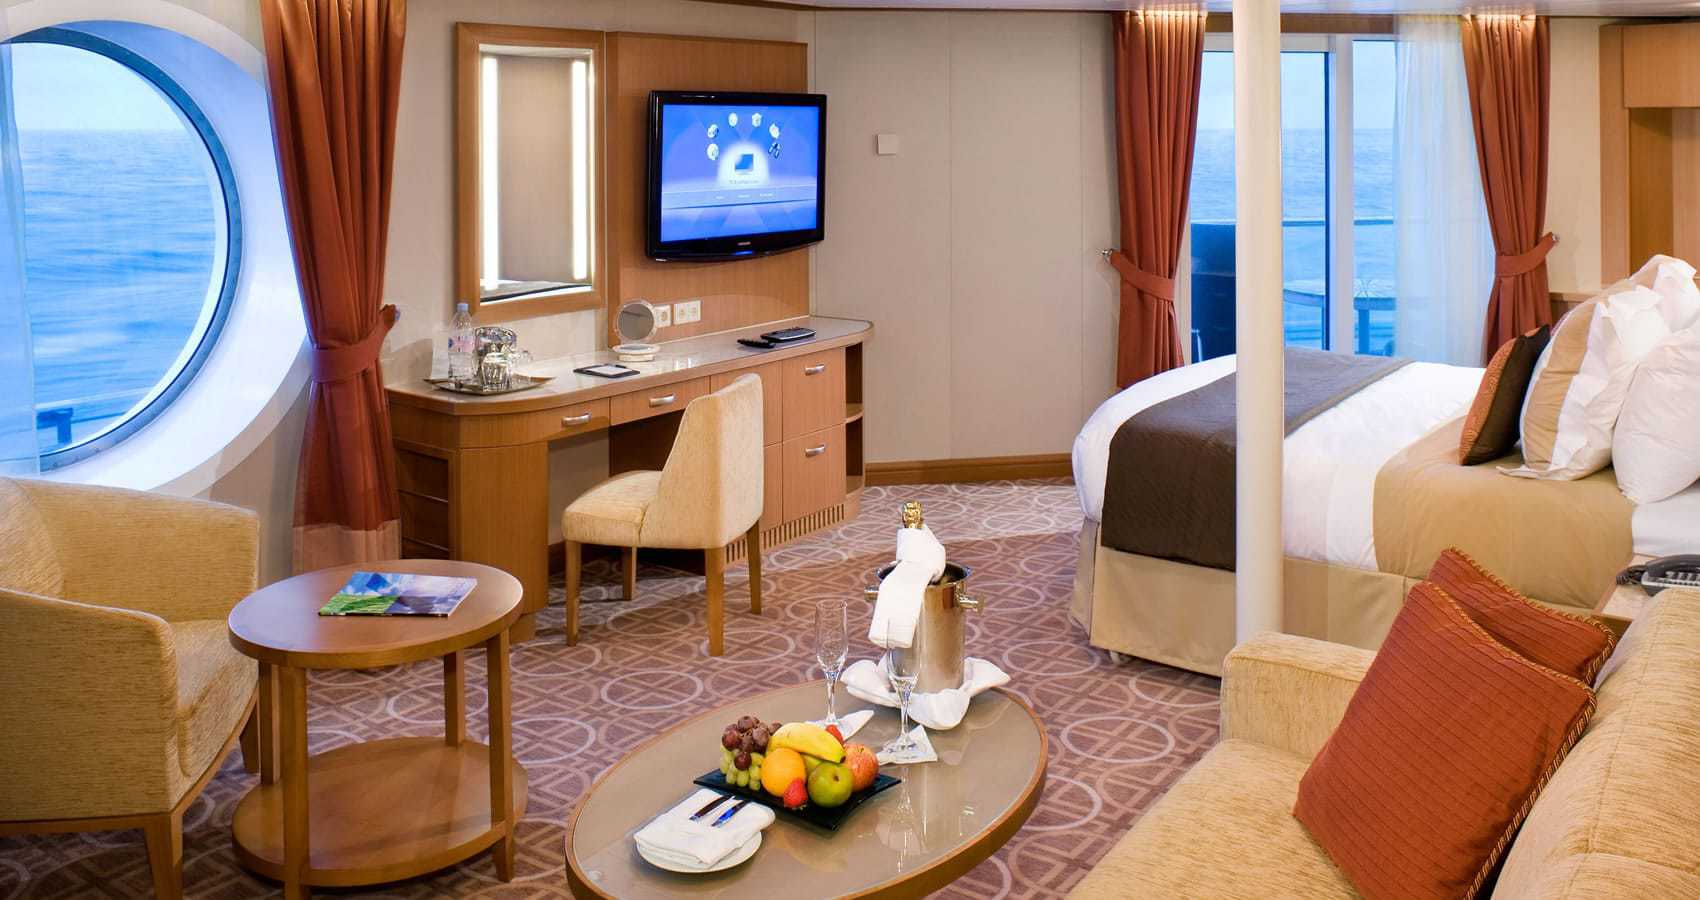 celebrity cruises move up upgrade offer